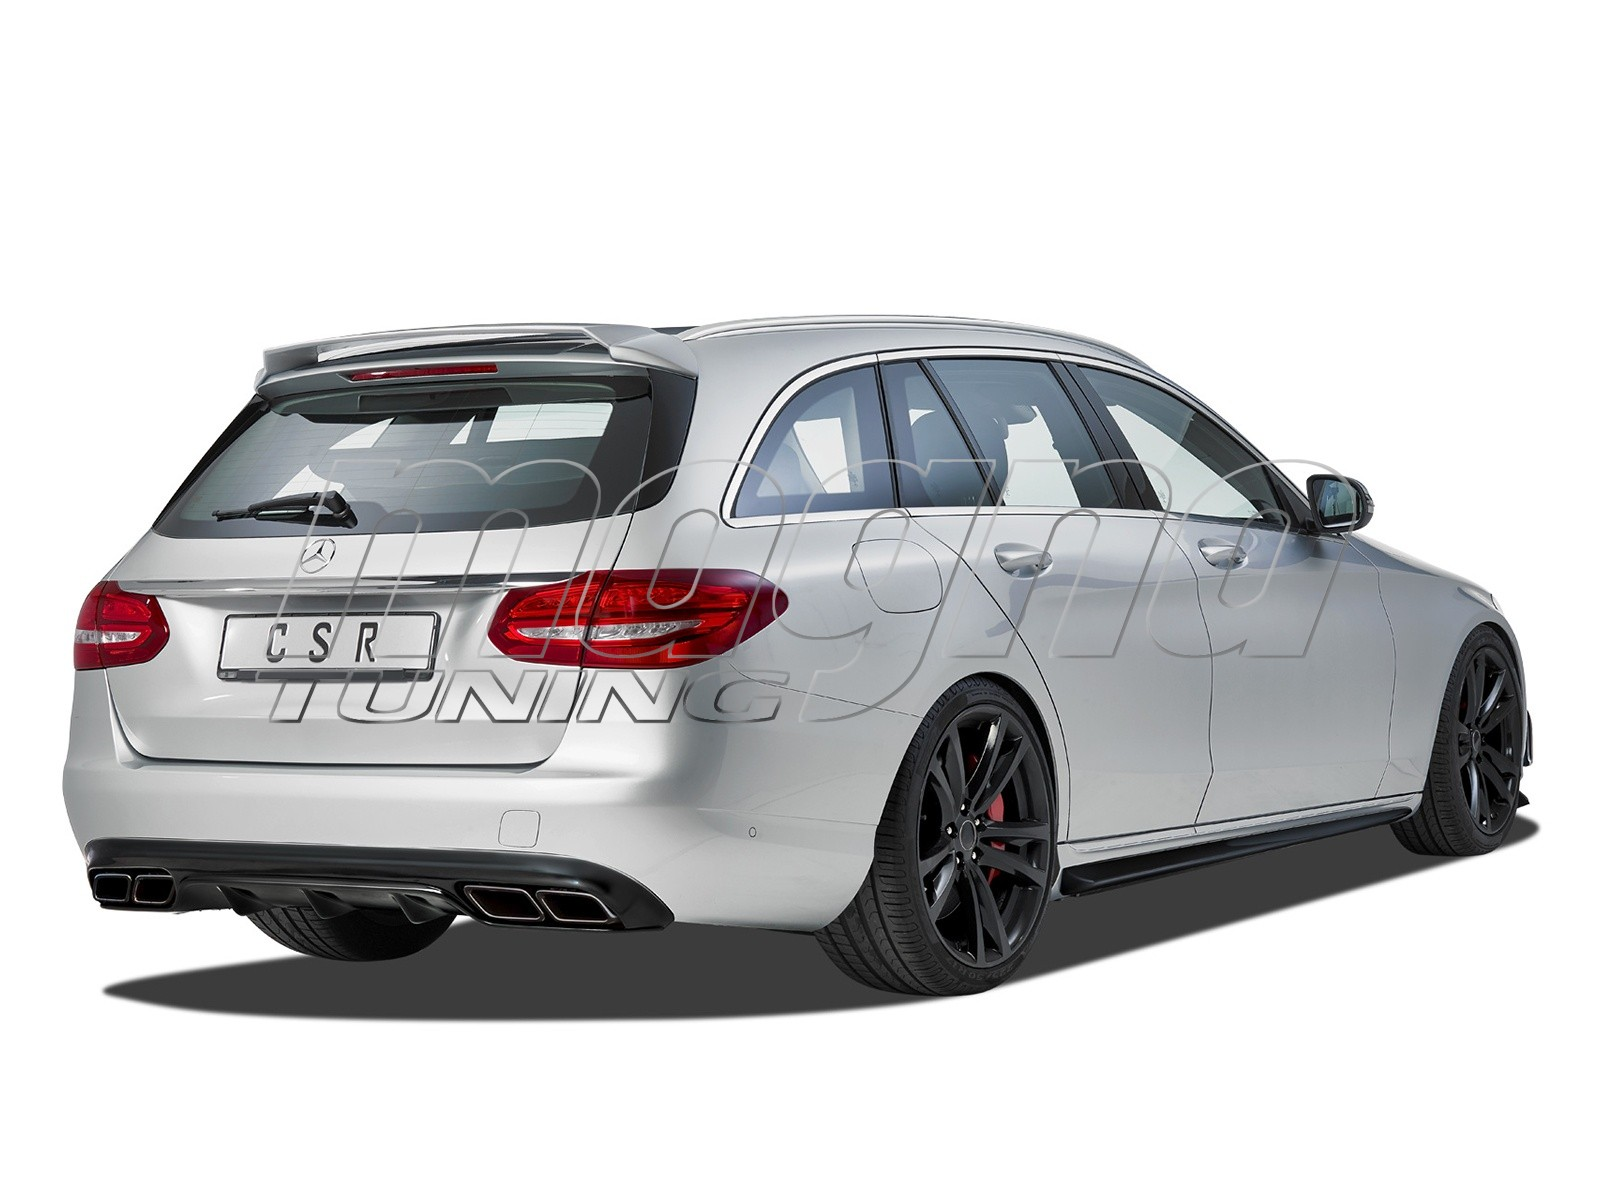 Mercedes C-Class W205 Crono Side Skirts